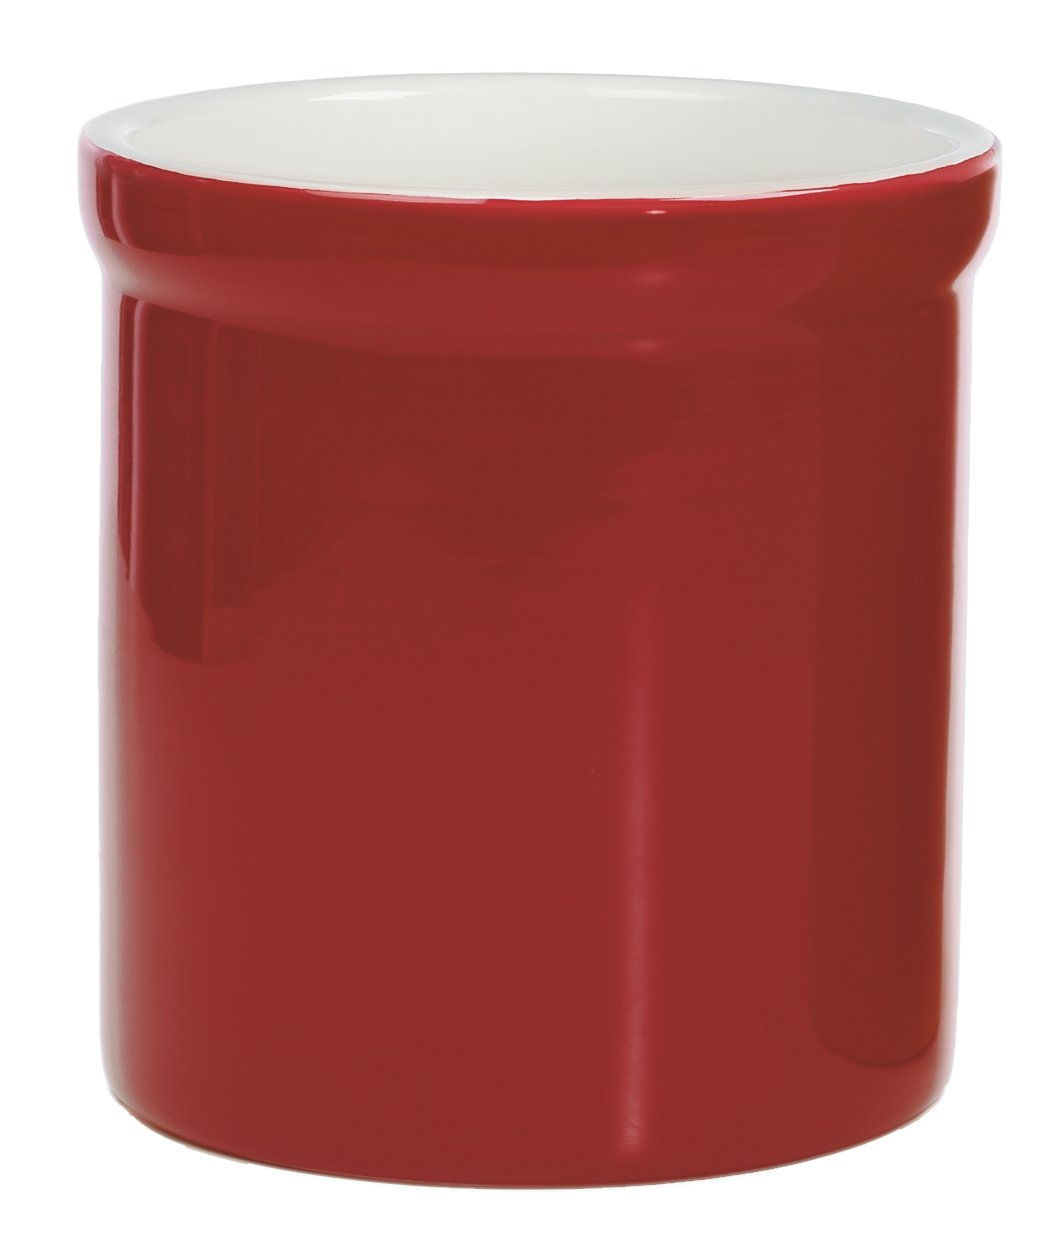 large red utensil holders amazon com rh amazon com  red kitchen utensil container